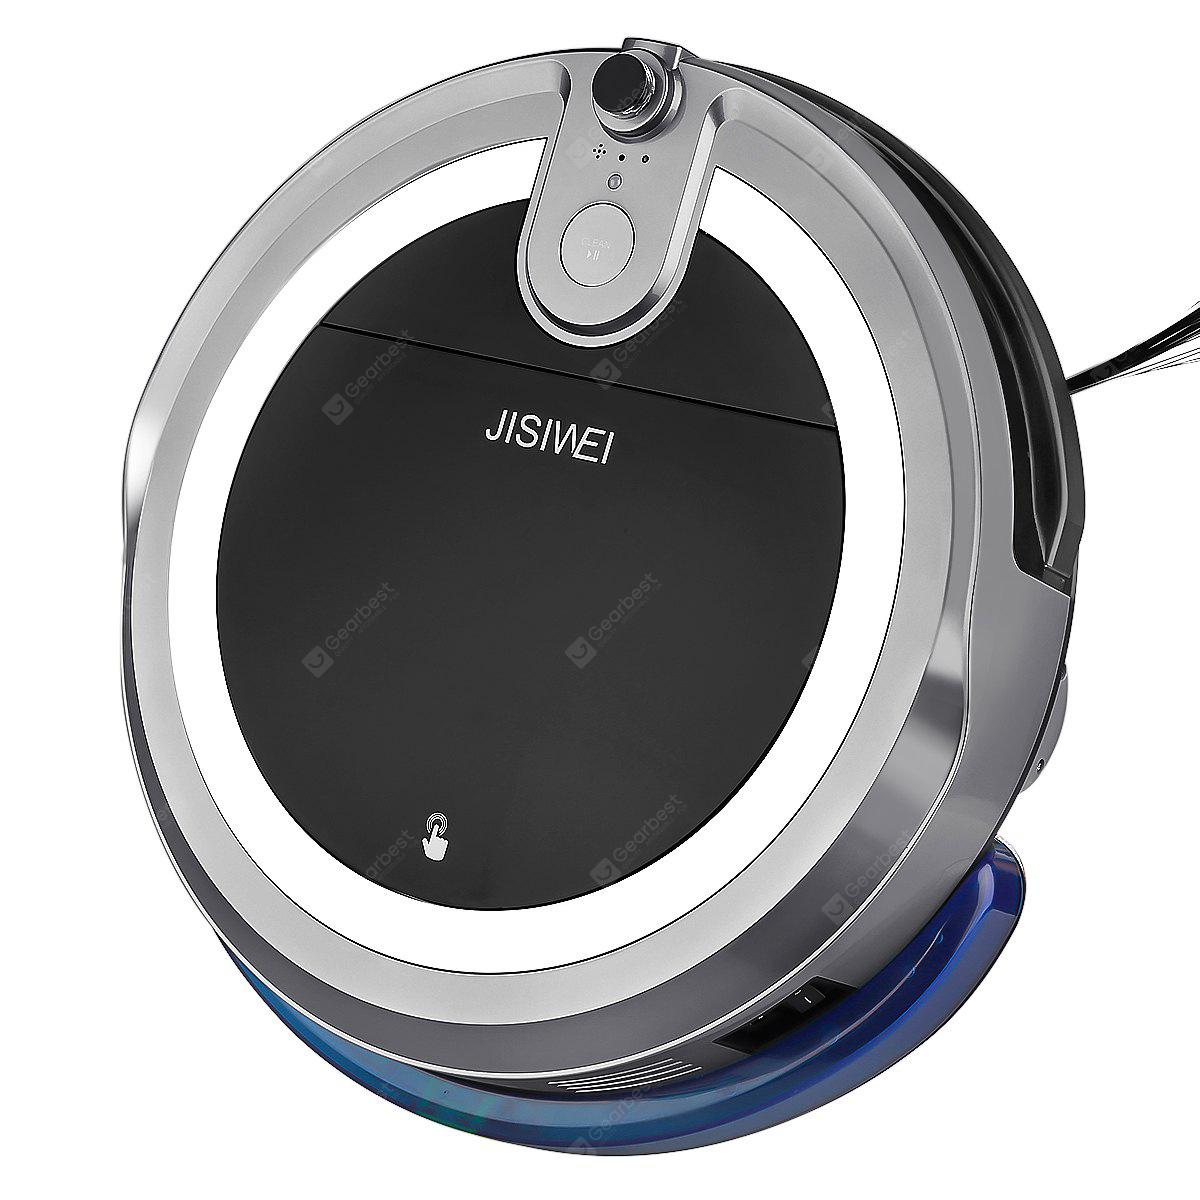 JISIWEI Aspirateur Cleaning Robot i3